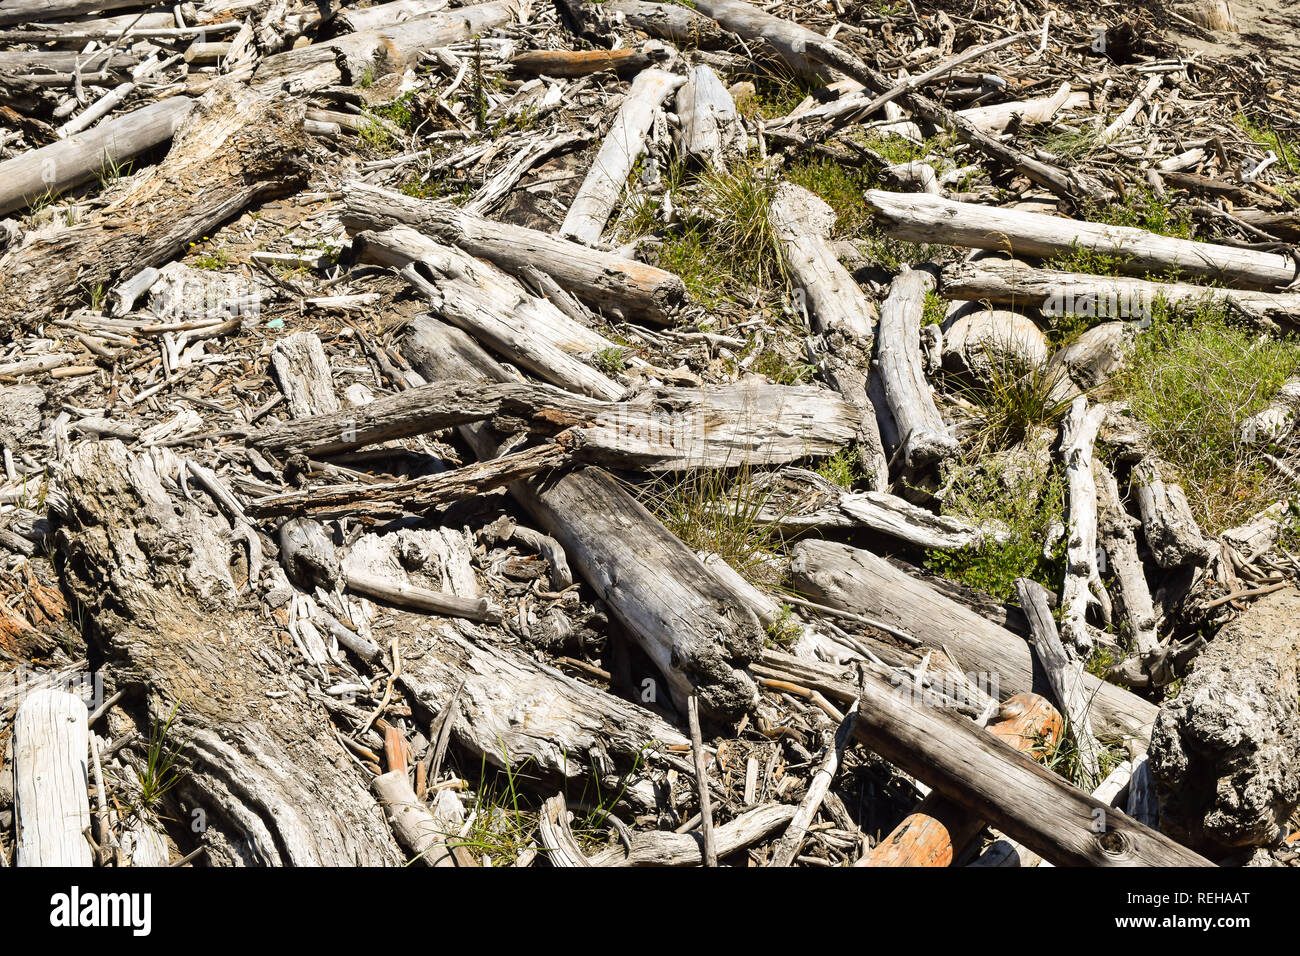 Driftwood covers grass and sand on the shore at Tolaga Bay, New Zealand - Stock Image